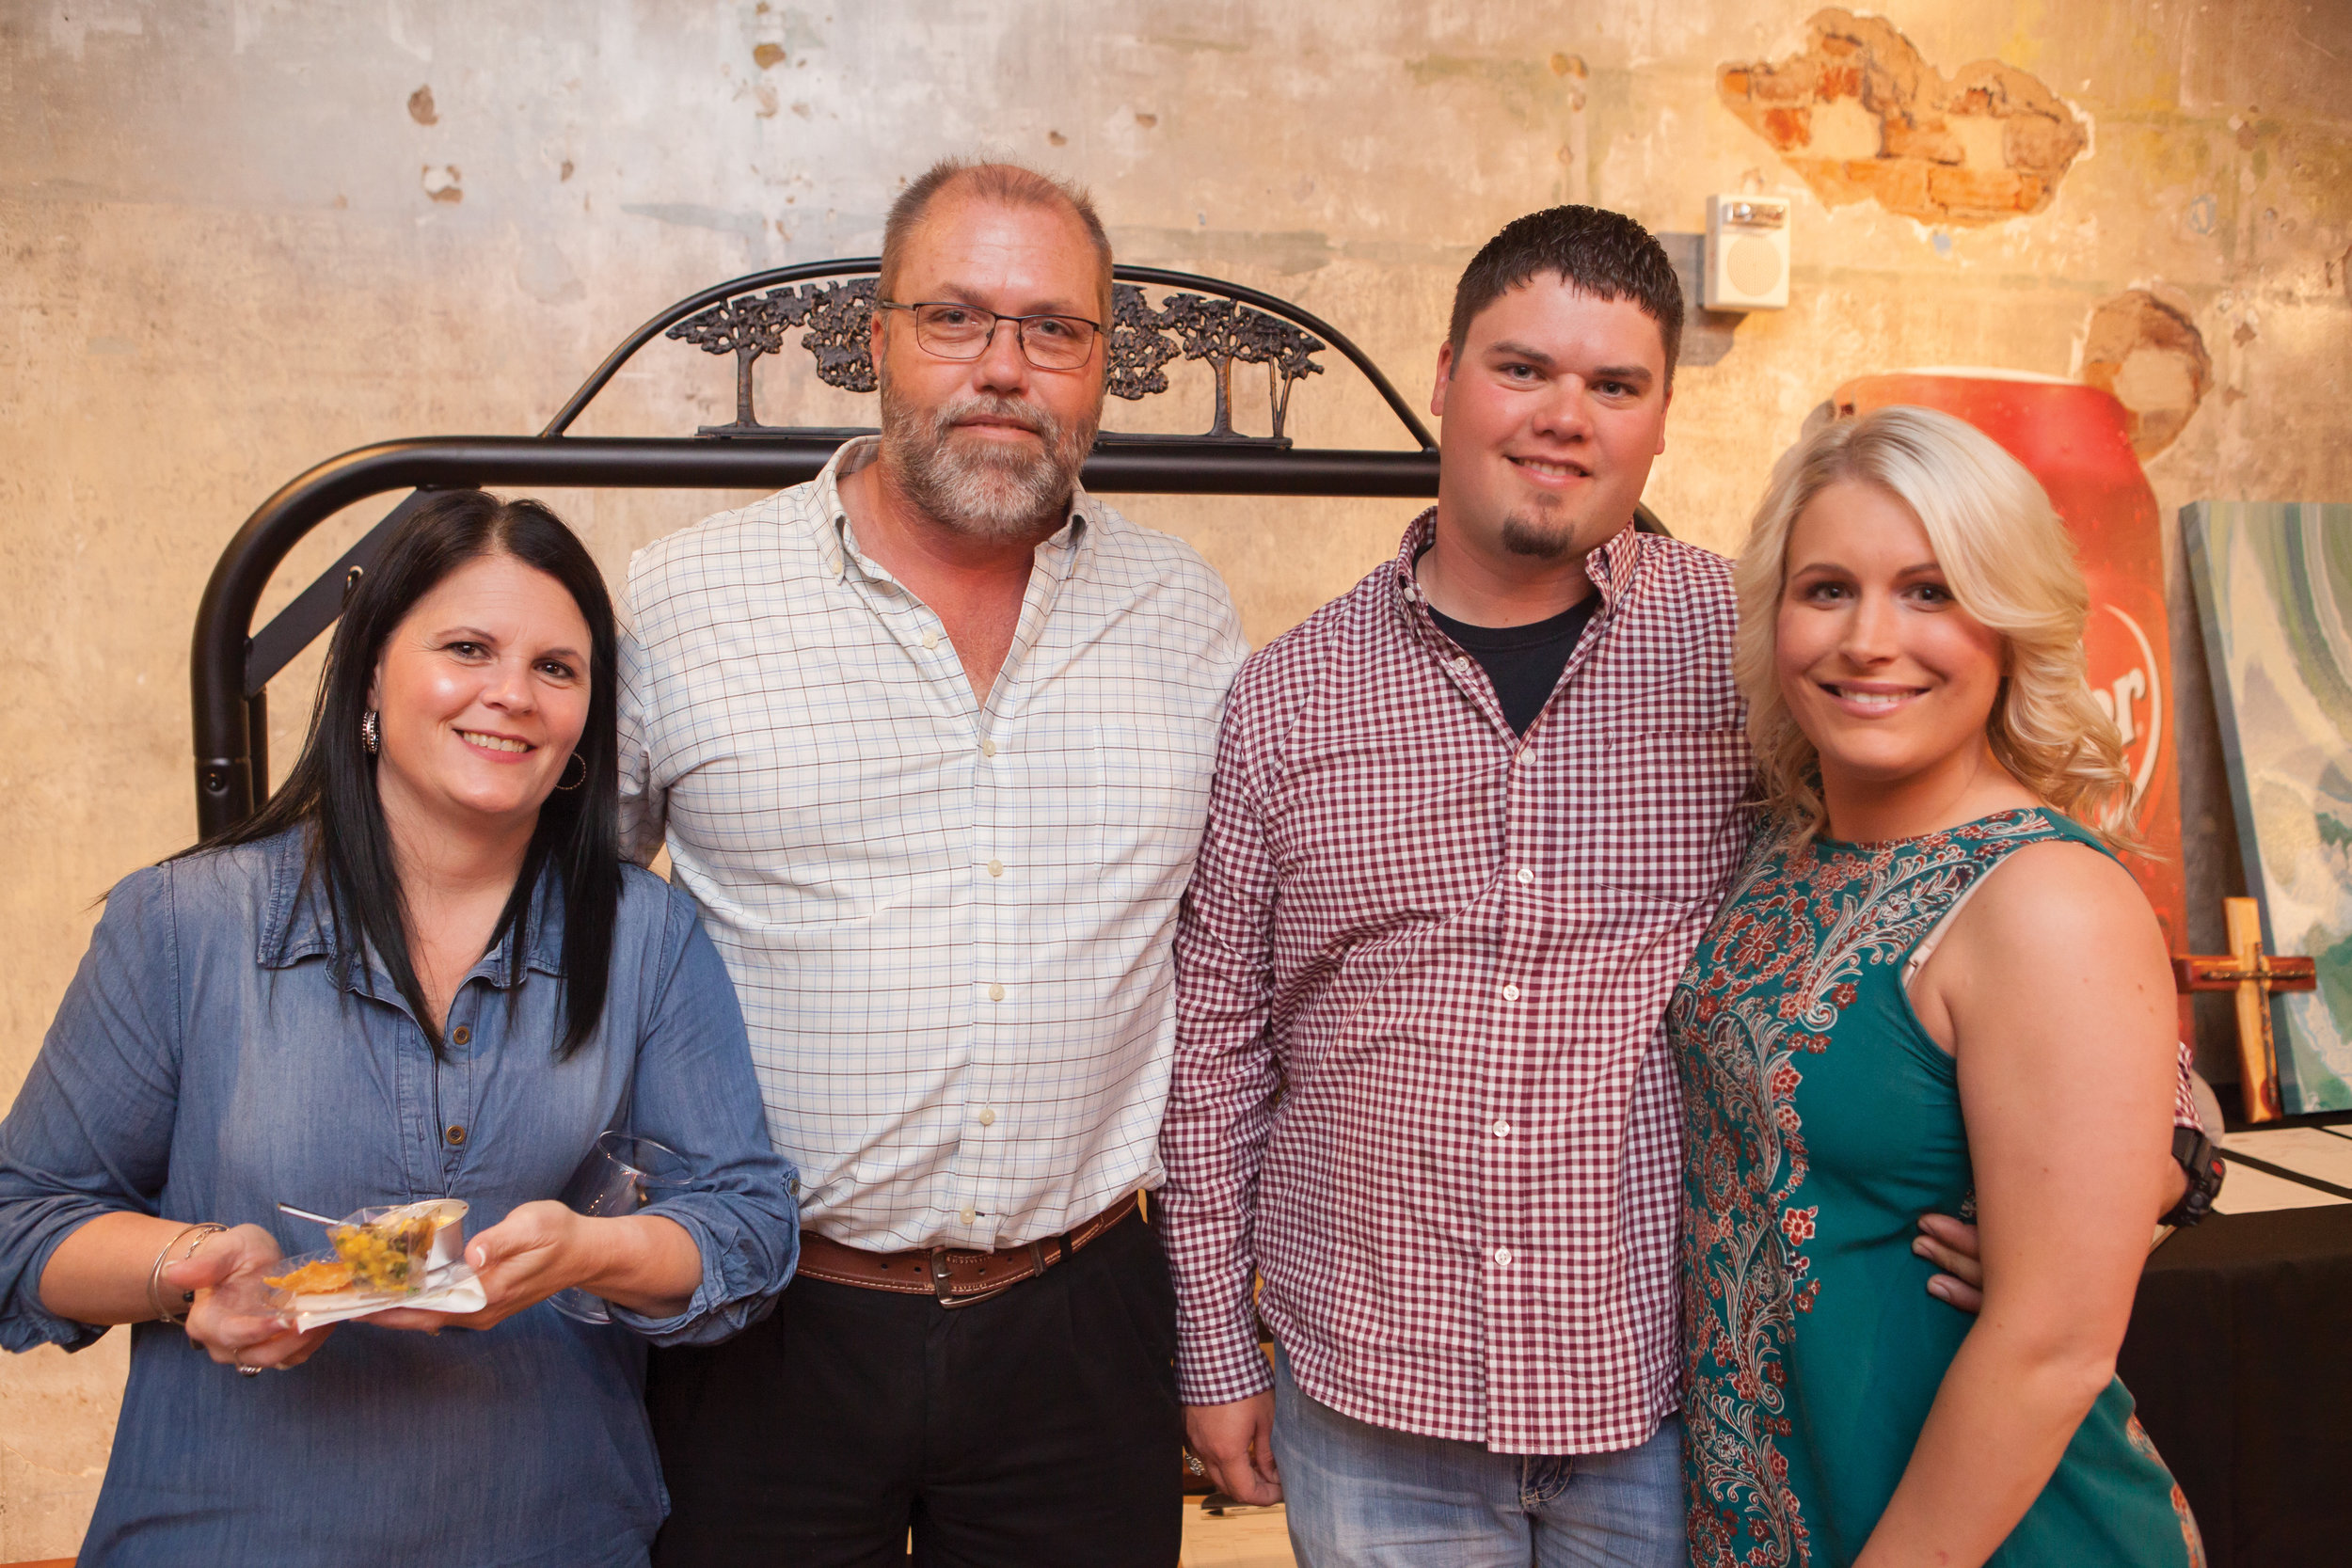 Tonya and Darrin Satterfield with Ryan and Brittany Satterfield